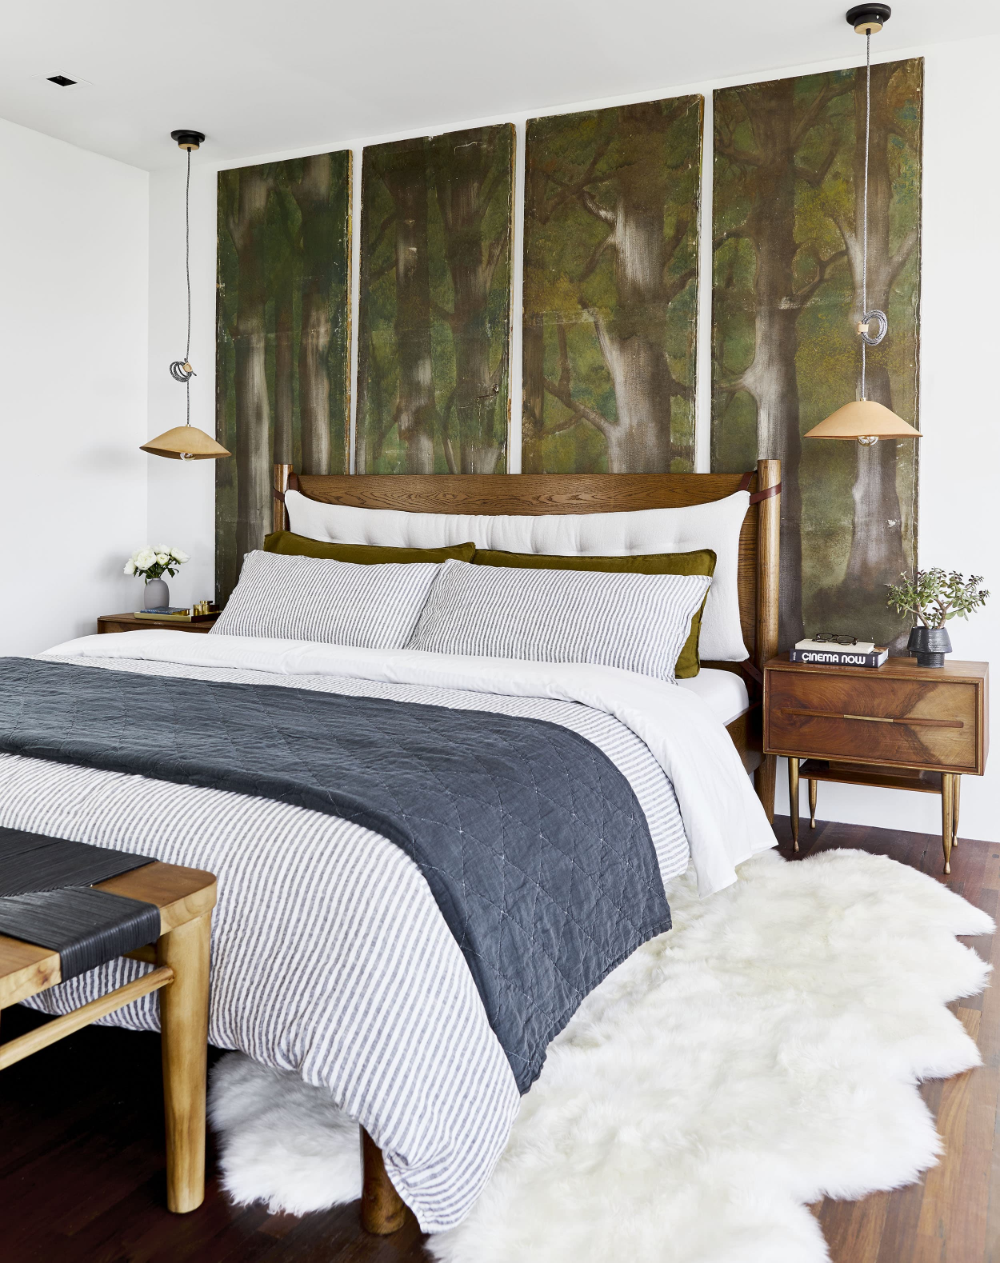 5 Steps to Get a HighImpact & Organic Bedroom